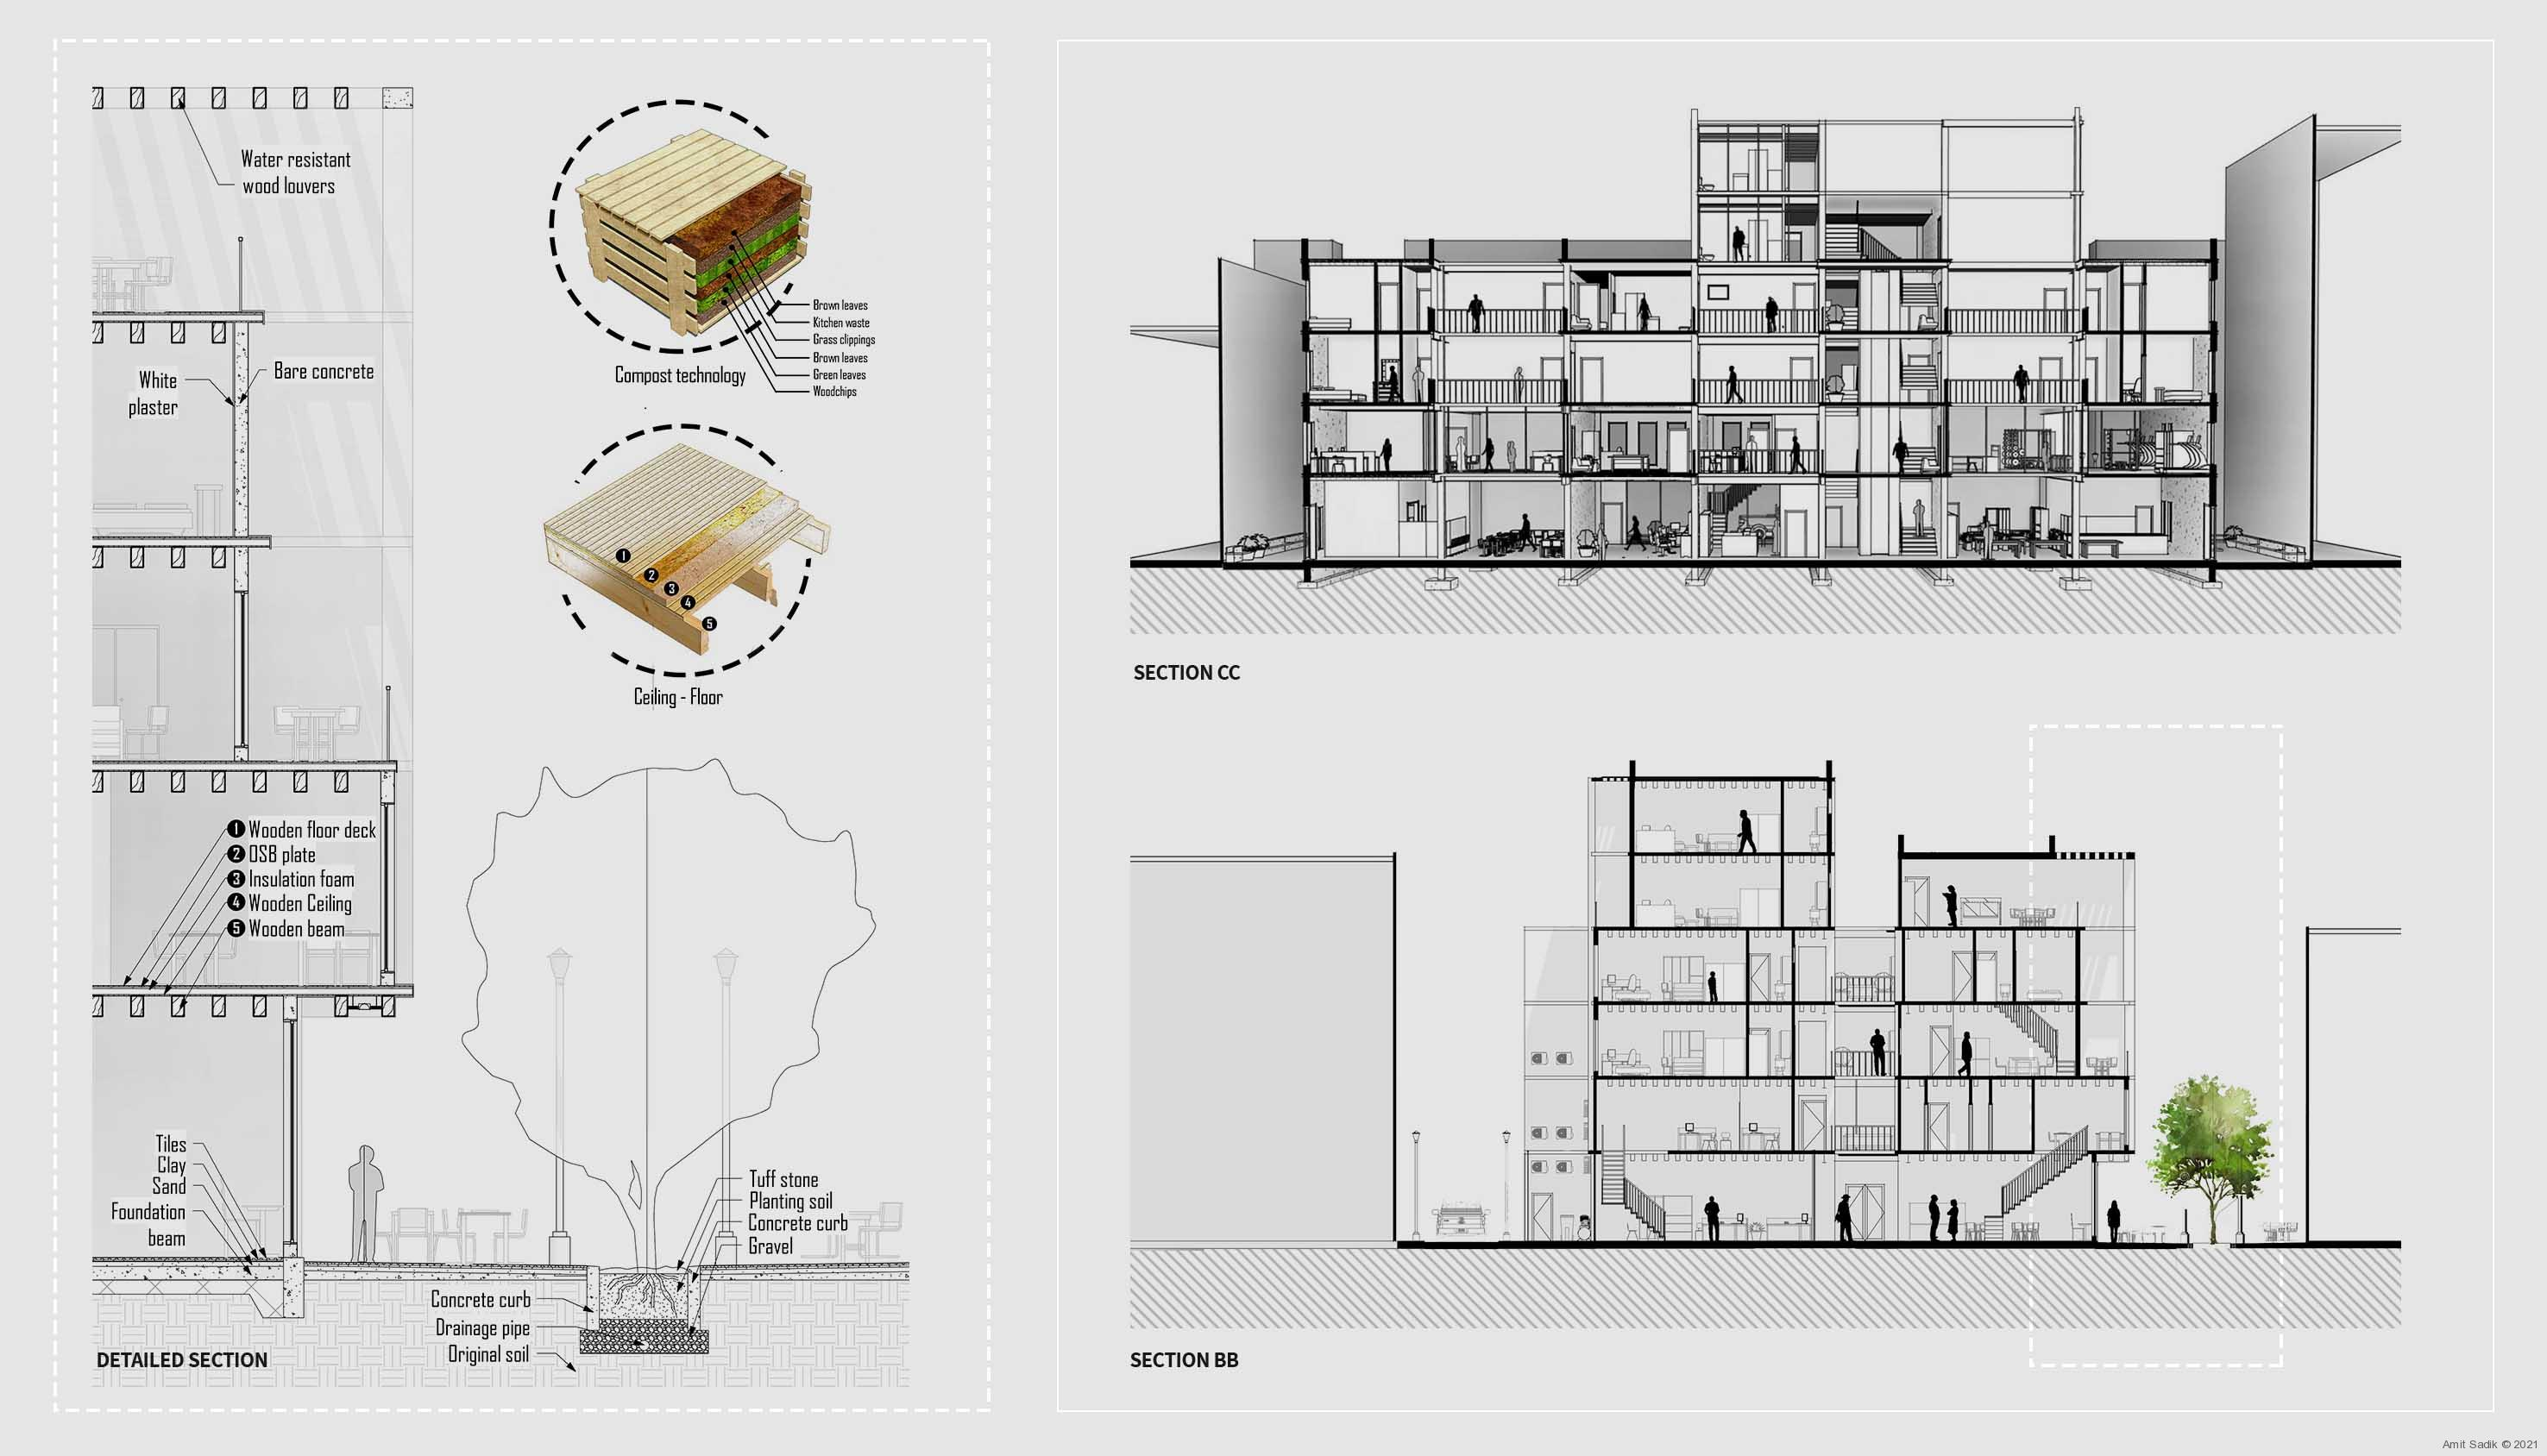 Shophouse 2.0 section, detailed section